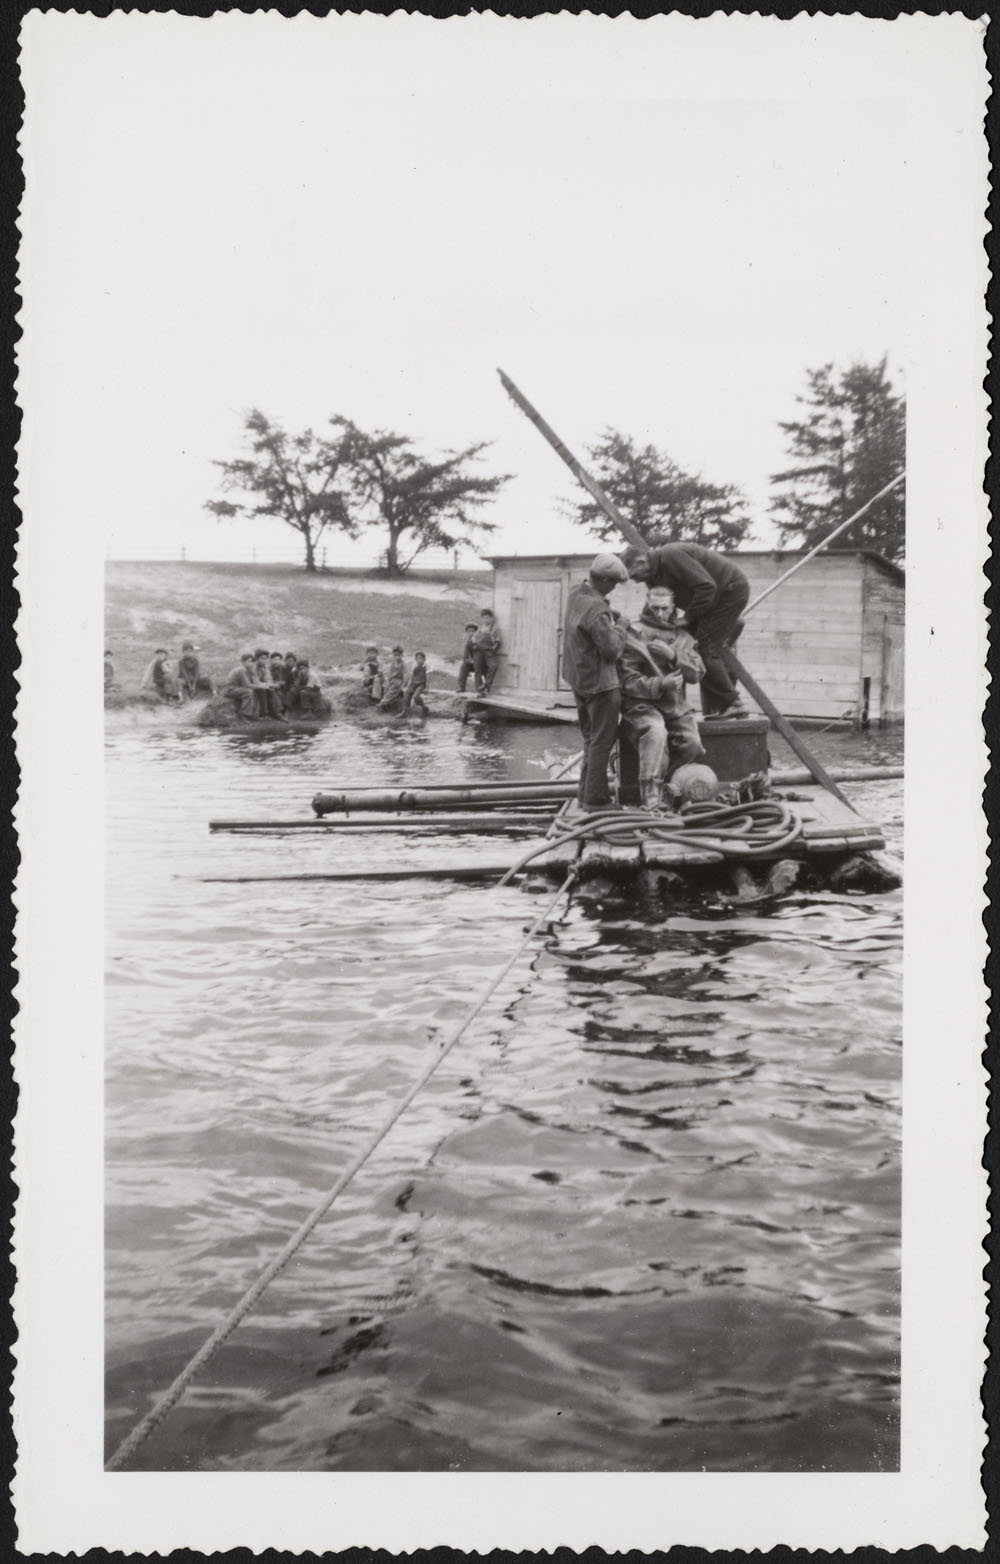 Saint John's Indian Residential School, a diver preparing to repair intake of water supply system as students watch from boathouse and shore, Chapleau, week of October 23, 1933